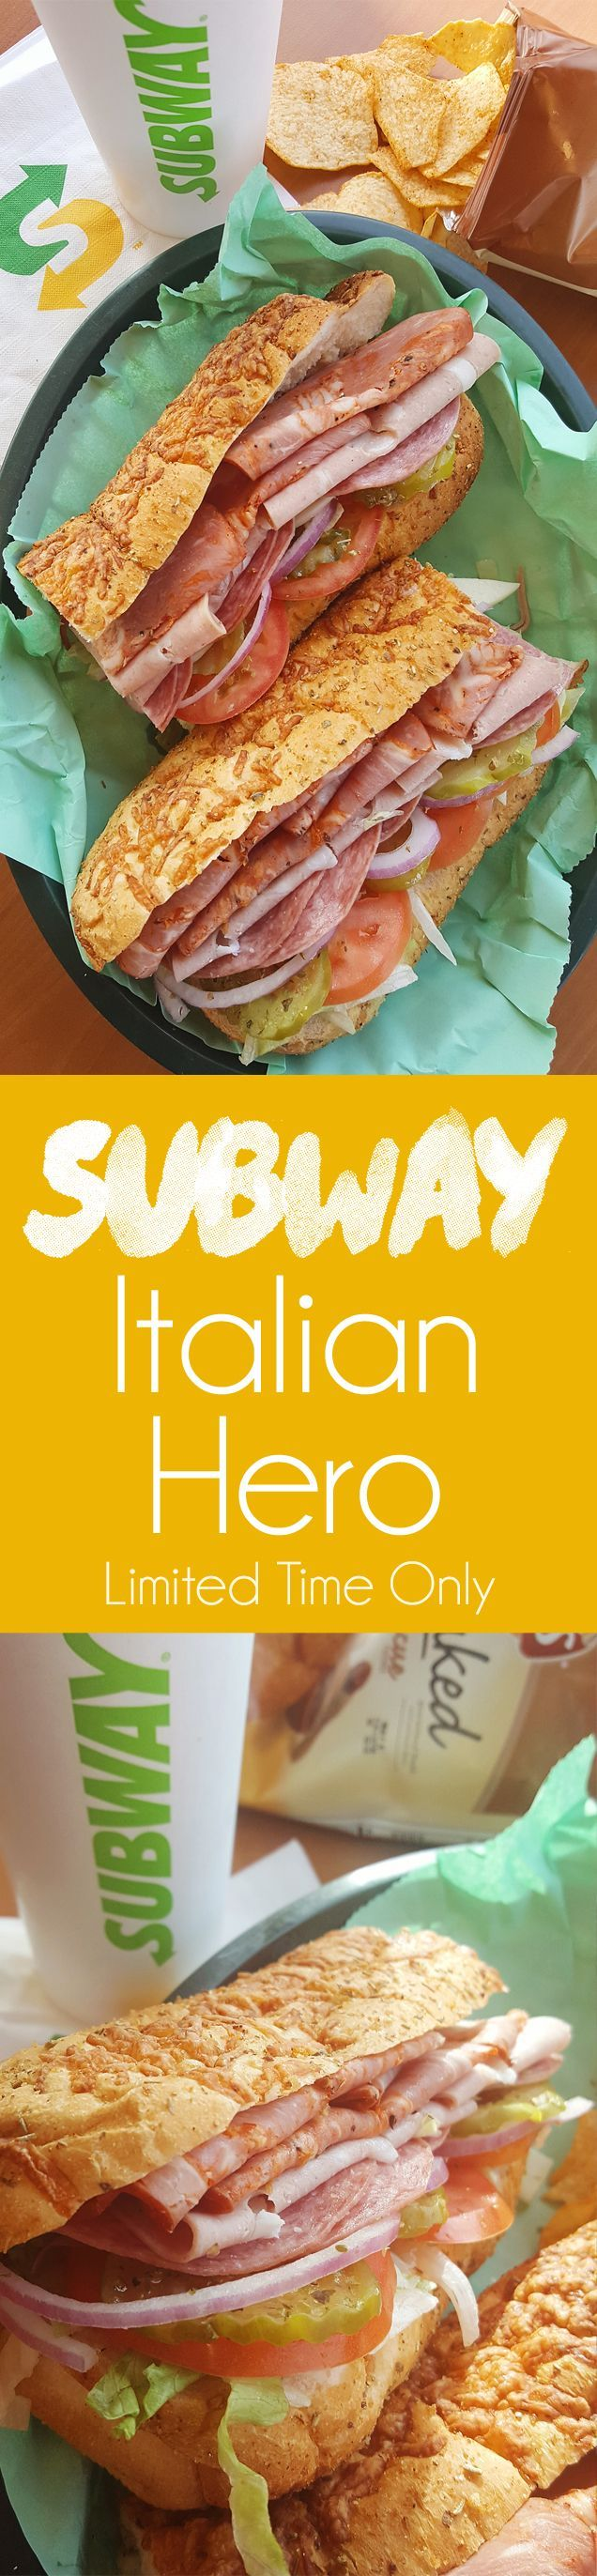 SUBWAY Italian Hero is a flavorful sub sandwich with authentic Italian flavors. Fresh bread is topped with Capicola, Mortadella, Genoa Salami, Provolone, your preferred veggies, oregano, oil and red wine vinegar for a delicious and convenient meal you will love! #Subway #BuildItBetter #Sponsored #Ad